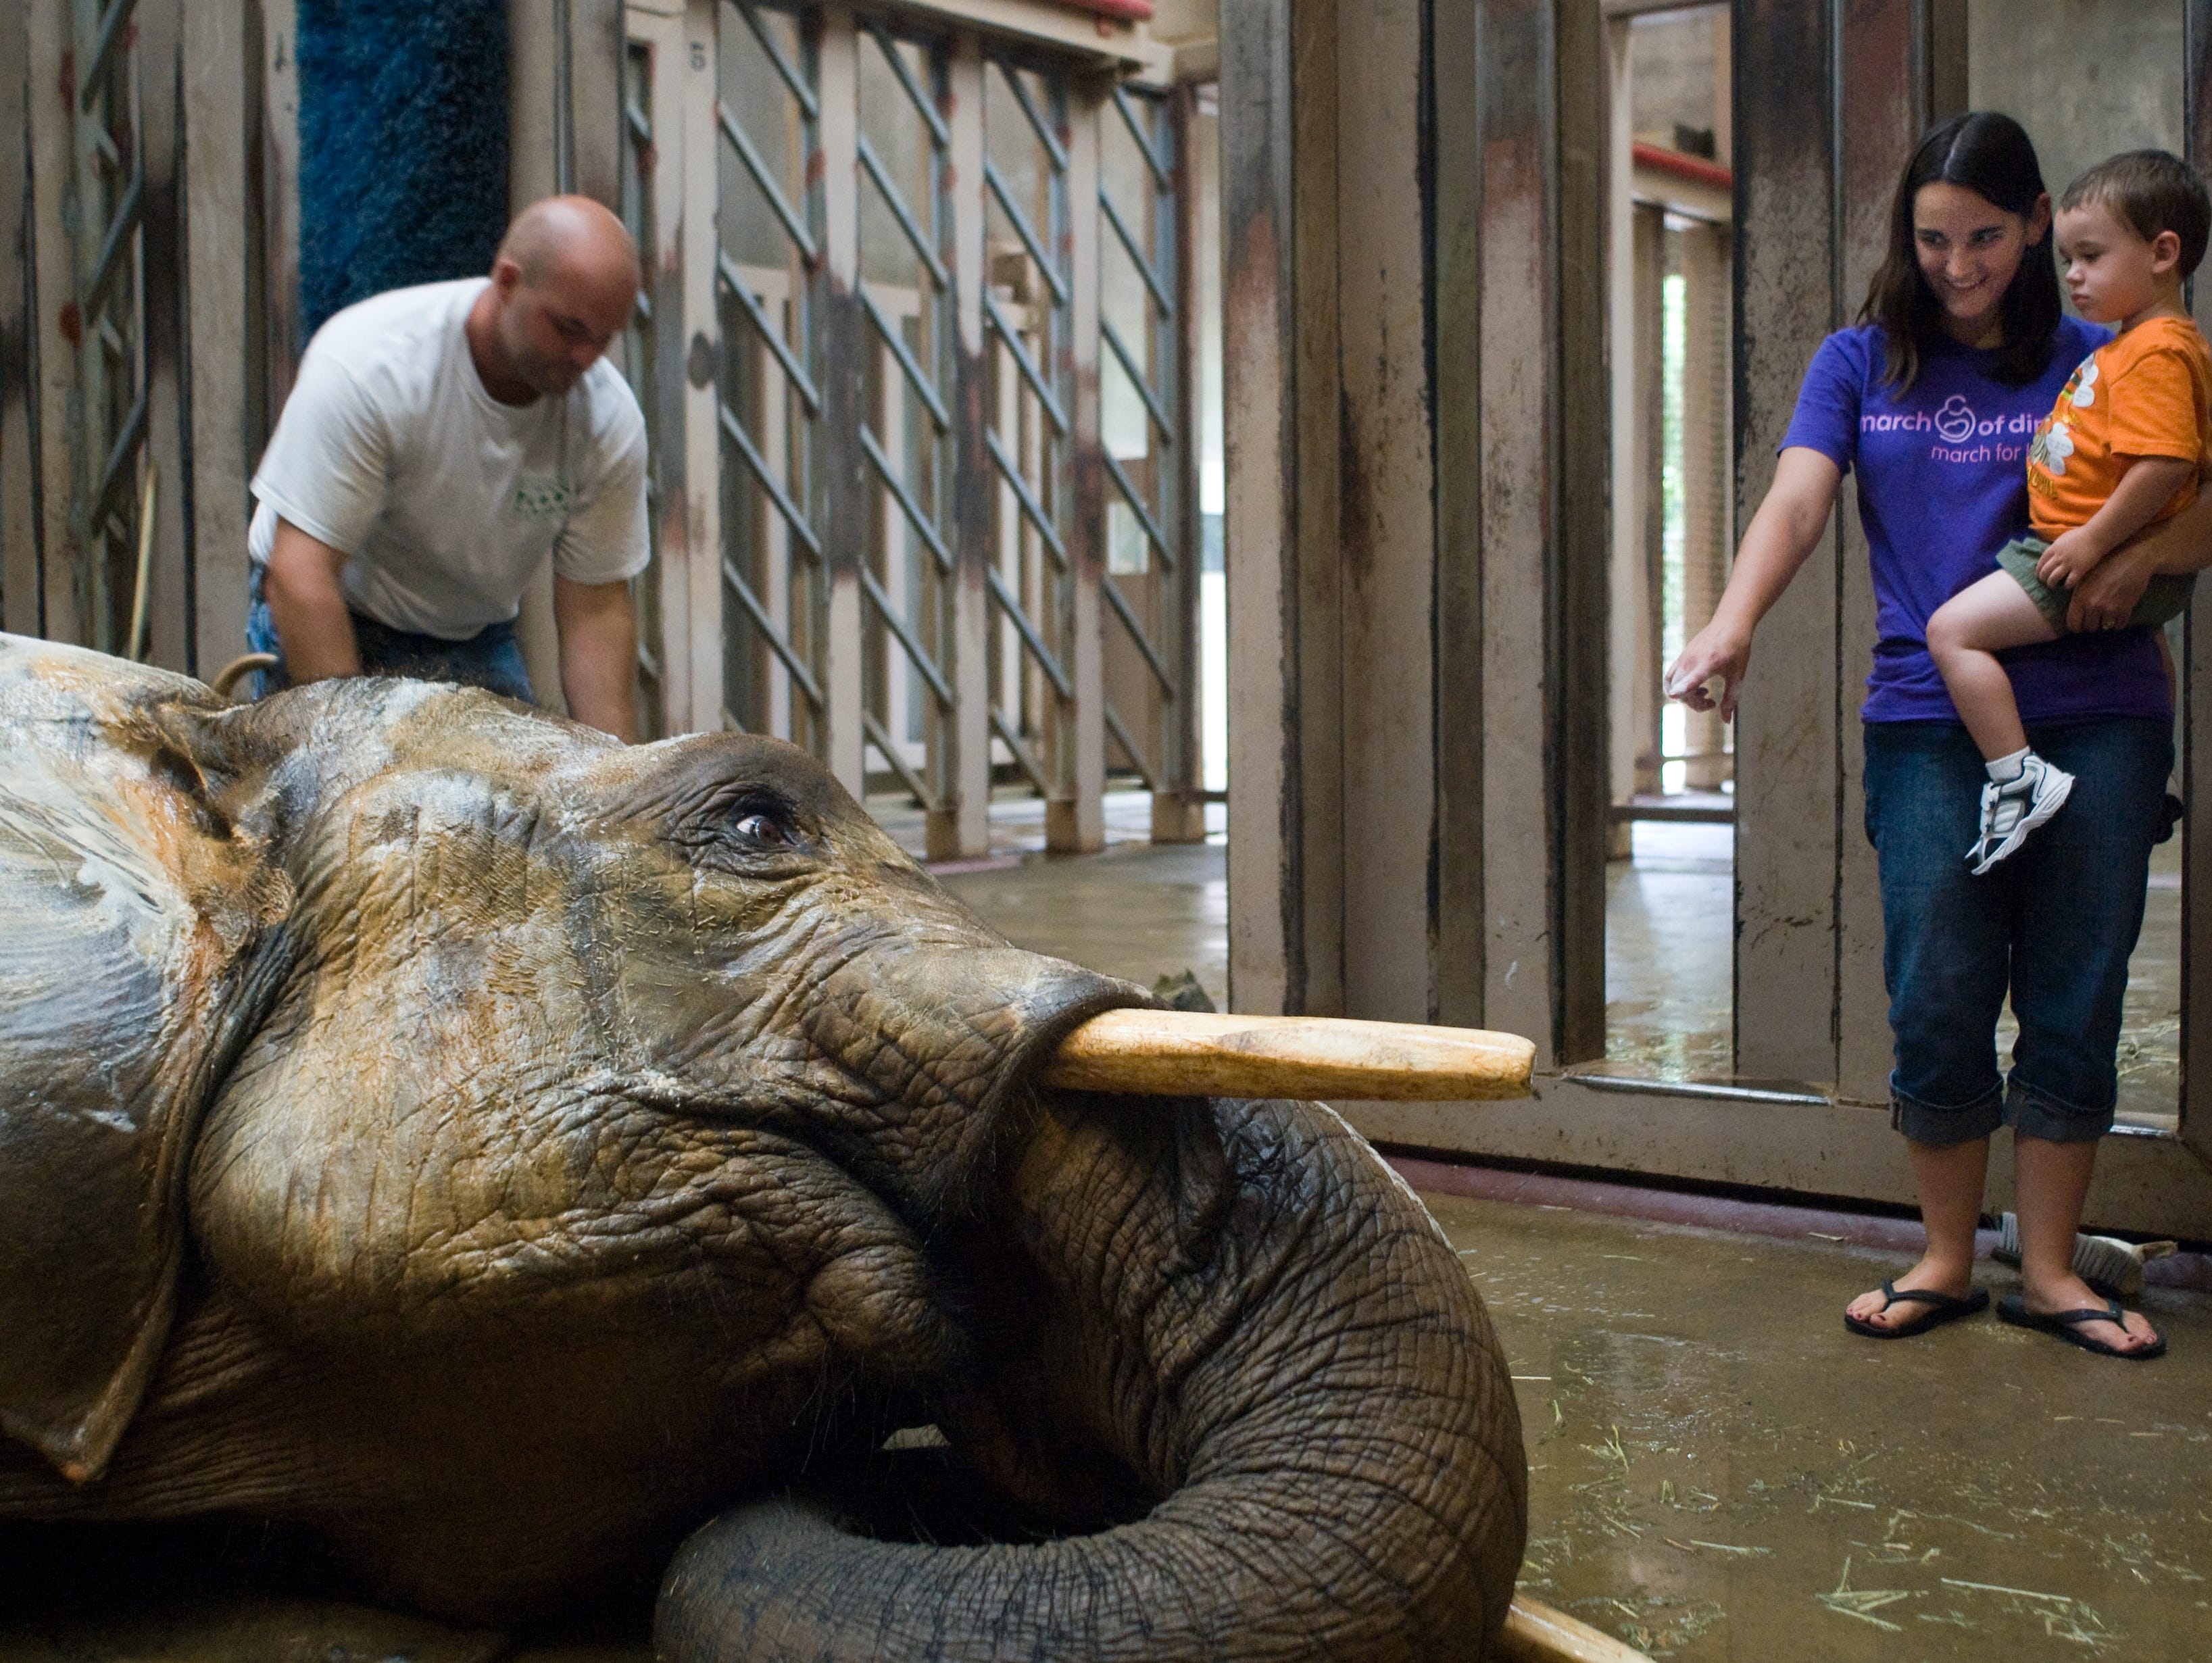 Nancy Weaver, and her son Andrew, 2, right, of Powell were Thursday's winner of the Knoxville Zoo's Sudsy Safari. Todd Naelitz, lead elephant handler at the Knoxville Zoo, sprays down Jana, a 9 foot tall, 9,500 pound, 28-year-old African elephant on Thursday, July 16, 2009. Jana was used for that day's Sudsy Safari, a new feature at the Knoxville Zoo where a family has the opportunity to help in the elephants' daily bath.